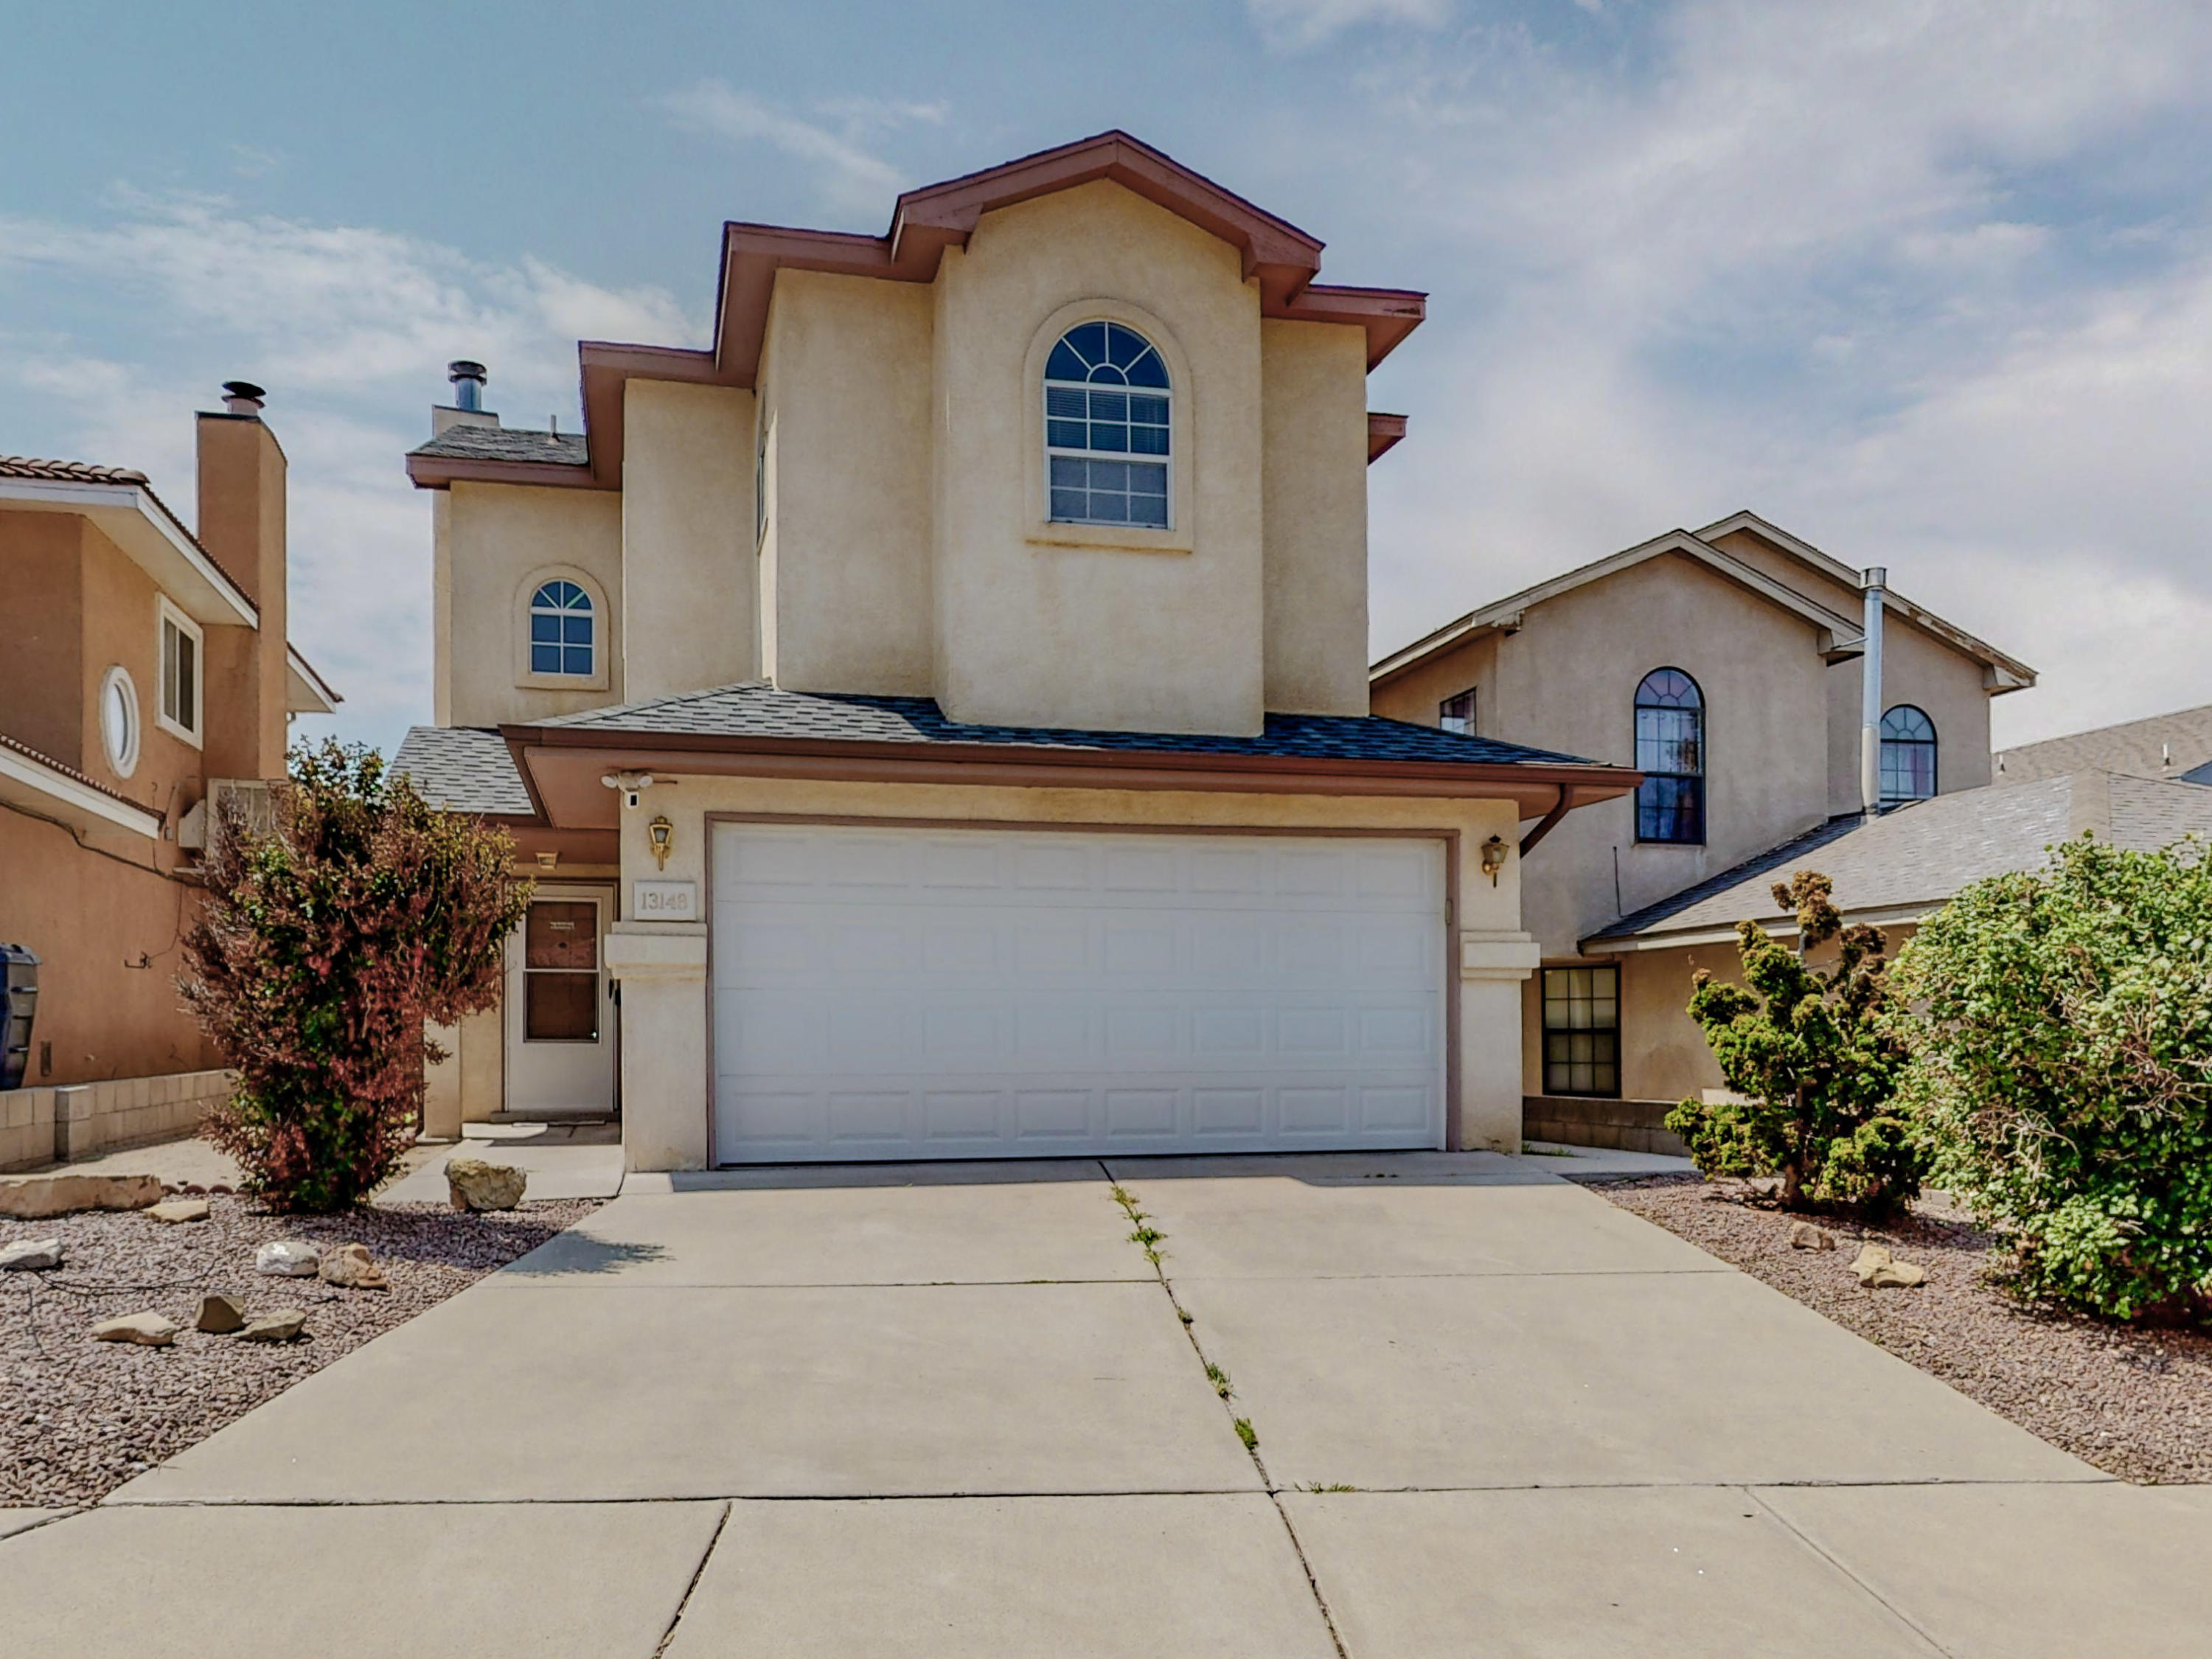 Welcome to this home located in the south  Foothills  with views of the Sandia Mountains! Well maintained 3 Bedrooms and 3 bath Great room opens to kitchen and dining room. Good sized pantry. 1/2 bath and laundry room on main level. Nice sized Primary Suite, full of light and views of the Mountains. 2 Secondary Bedrooms with shared bath. One room has a private  balcony. Garage Door recently replaced.  Block wall in back recently raised for privacy. Low Maintenance Front Yard! Back Yard Is Ready For Your Special Touch!